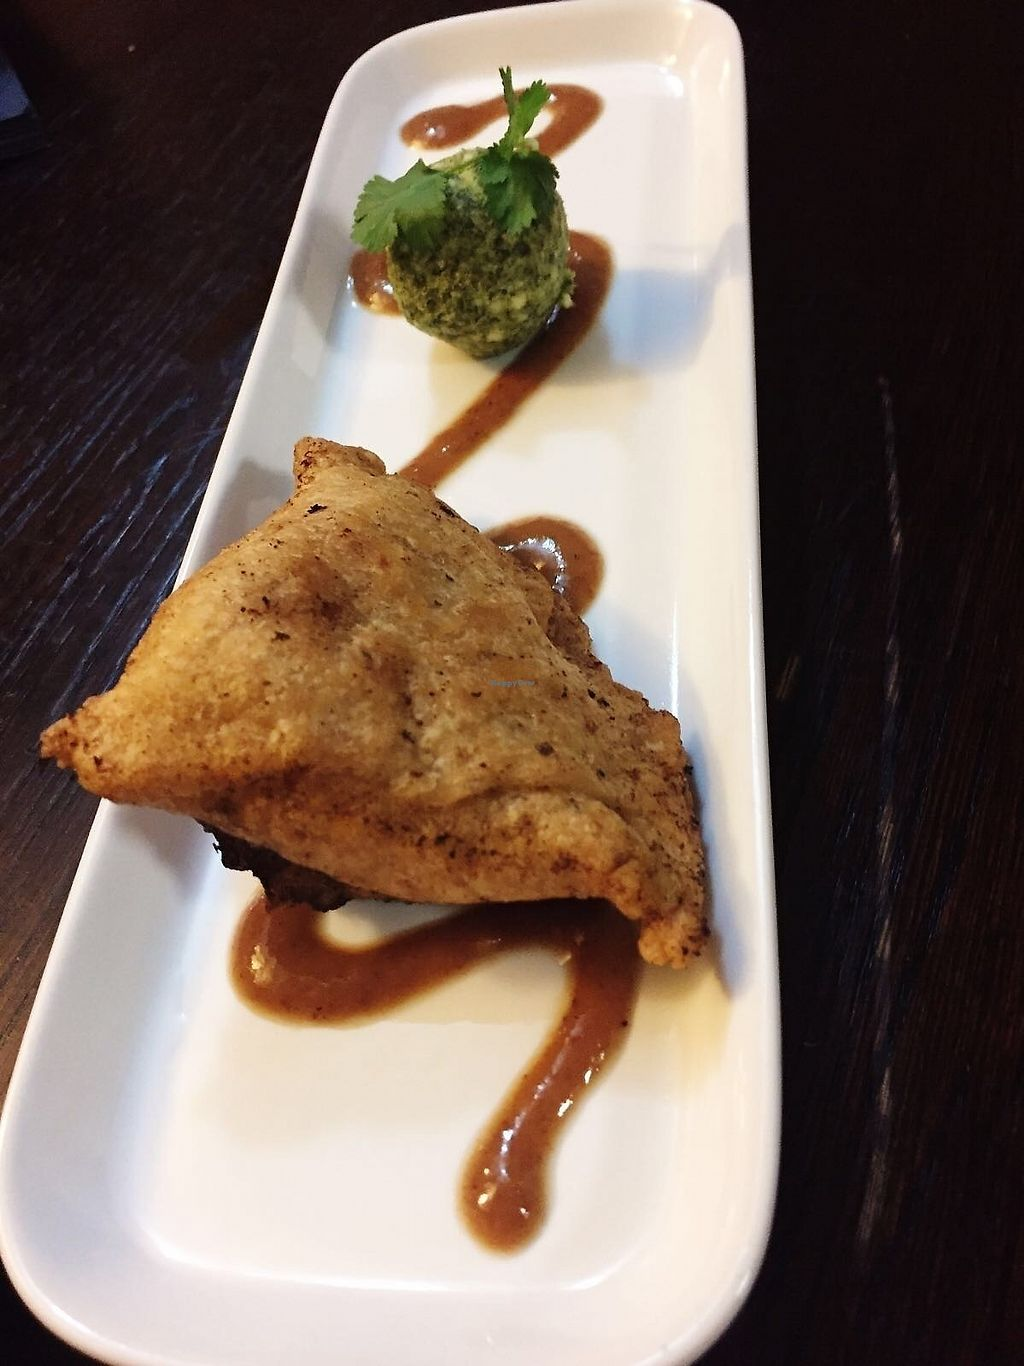 "Photo of Drakes Pub  by <a href=""/members/profile/TARAMCDONALD"">TARAMCDONALD</a> <br/>Vegan chickpea samosa! Incredible! <br/> October 16, 2017  - <a href='/contact/abuse/image/97228/315878'>Report</a>"